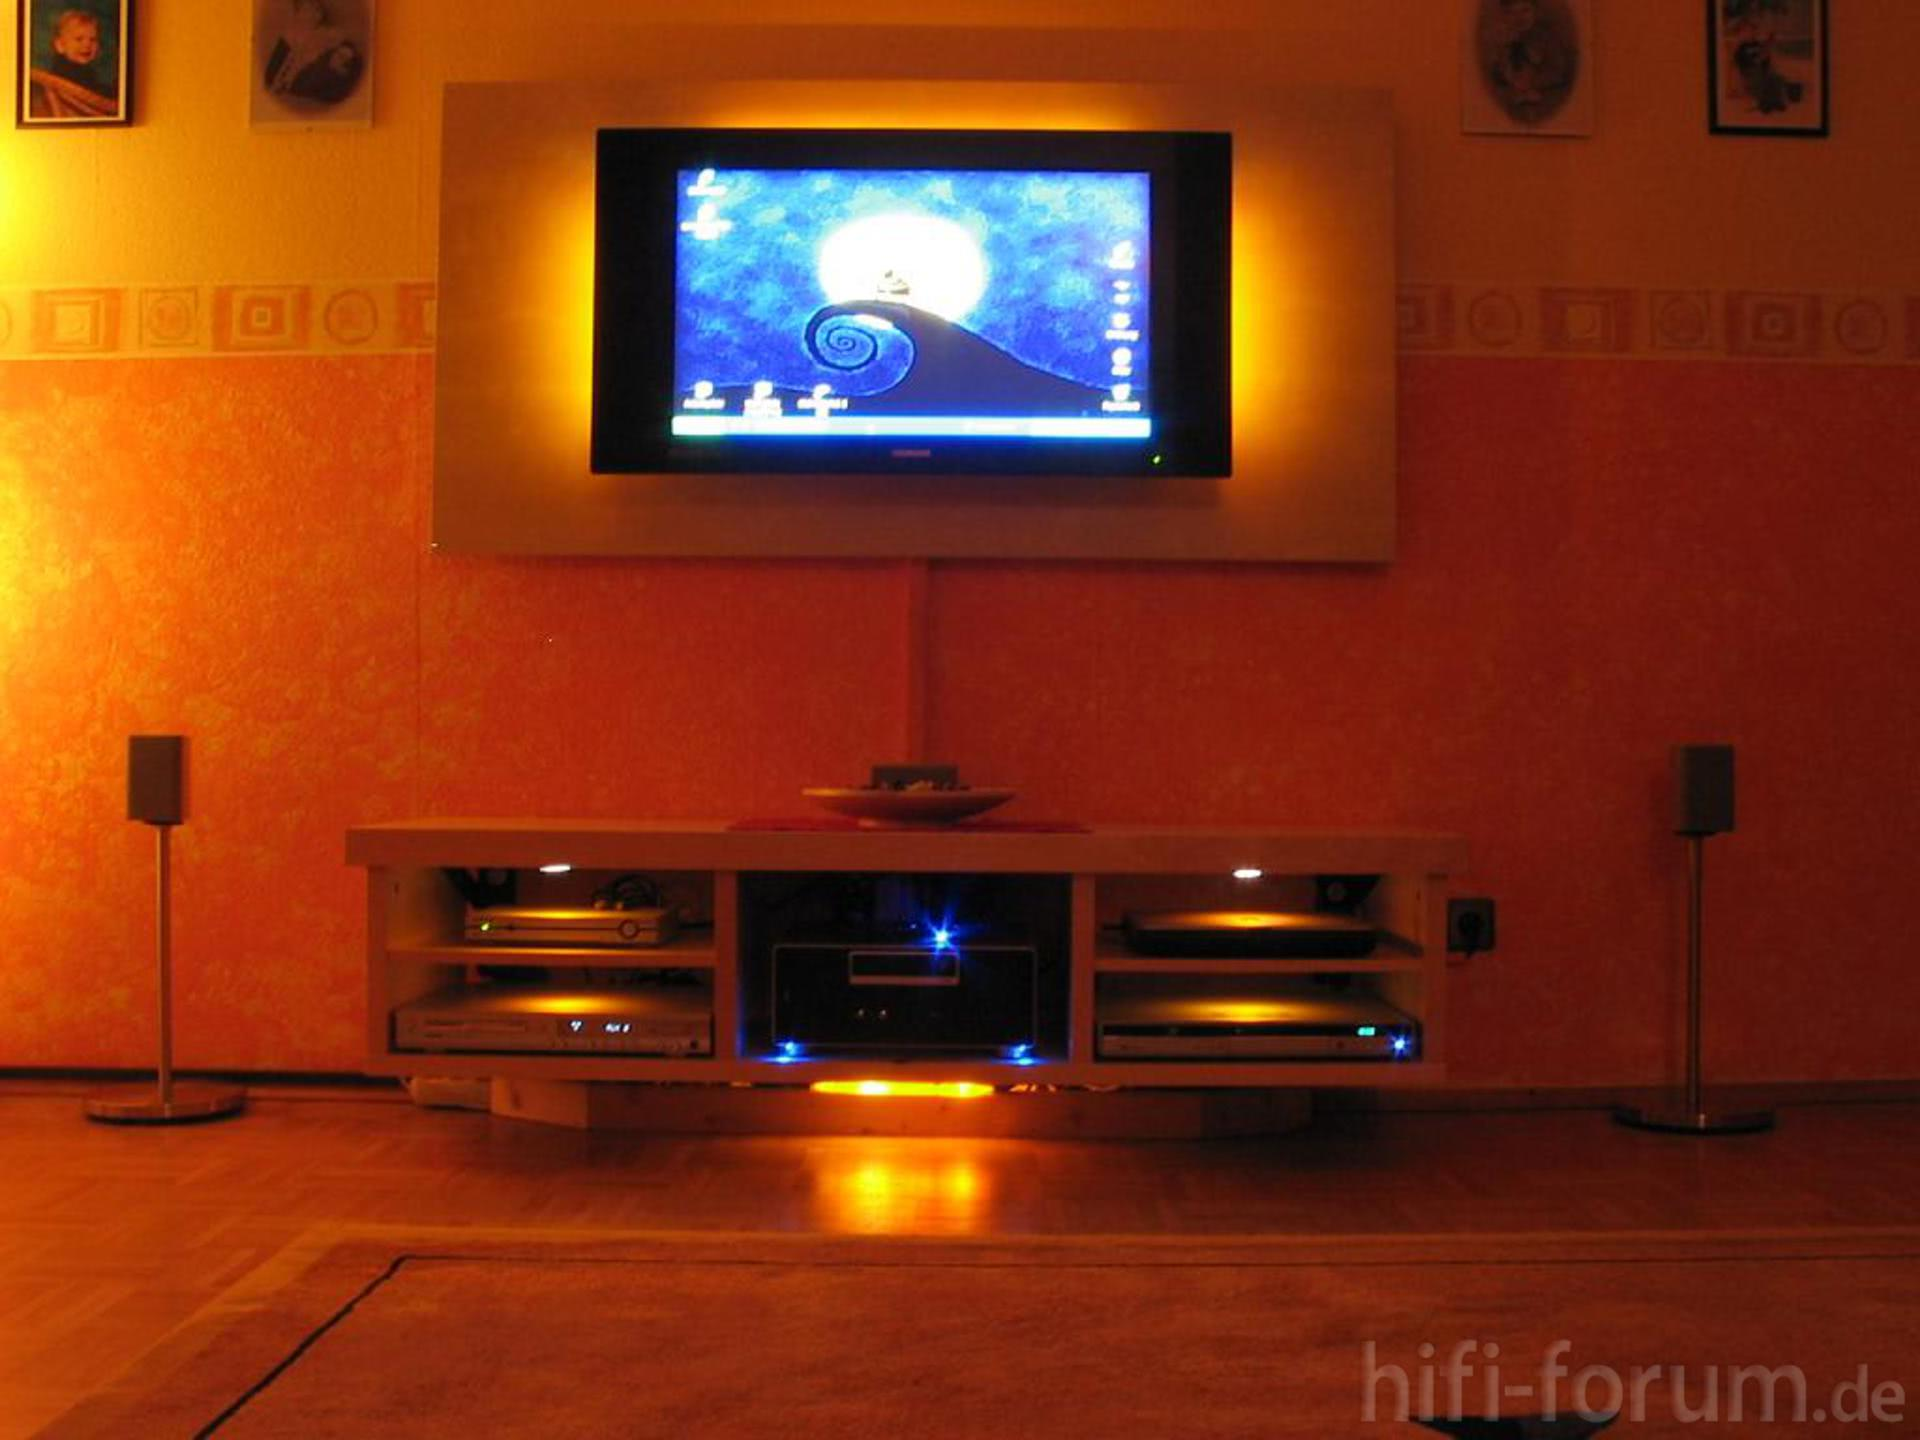 lcd im rampenlicht mit ikea m bel beleuchtung heimkino ikea lcd moebel surround thomson. Black Bedroom Furniture Sets. Home Design Ideas